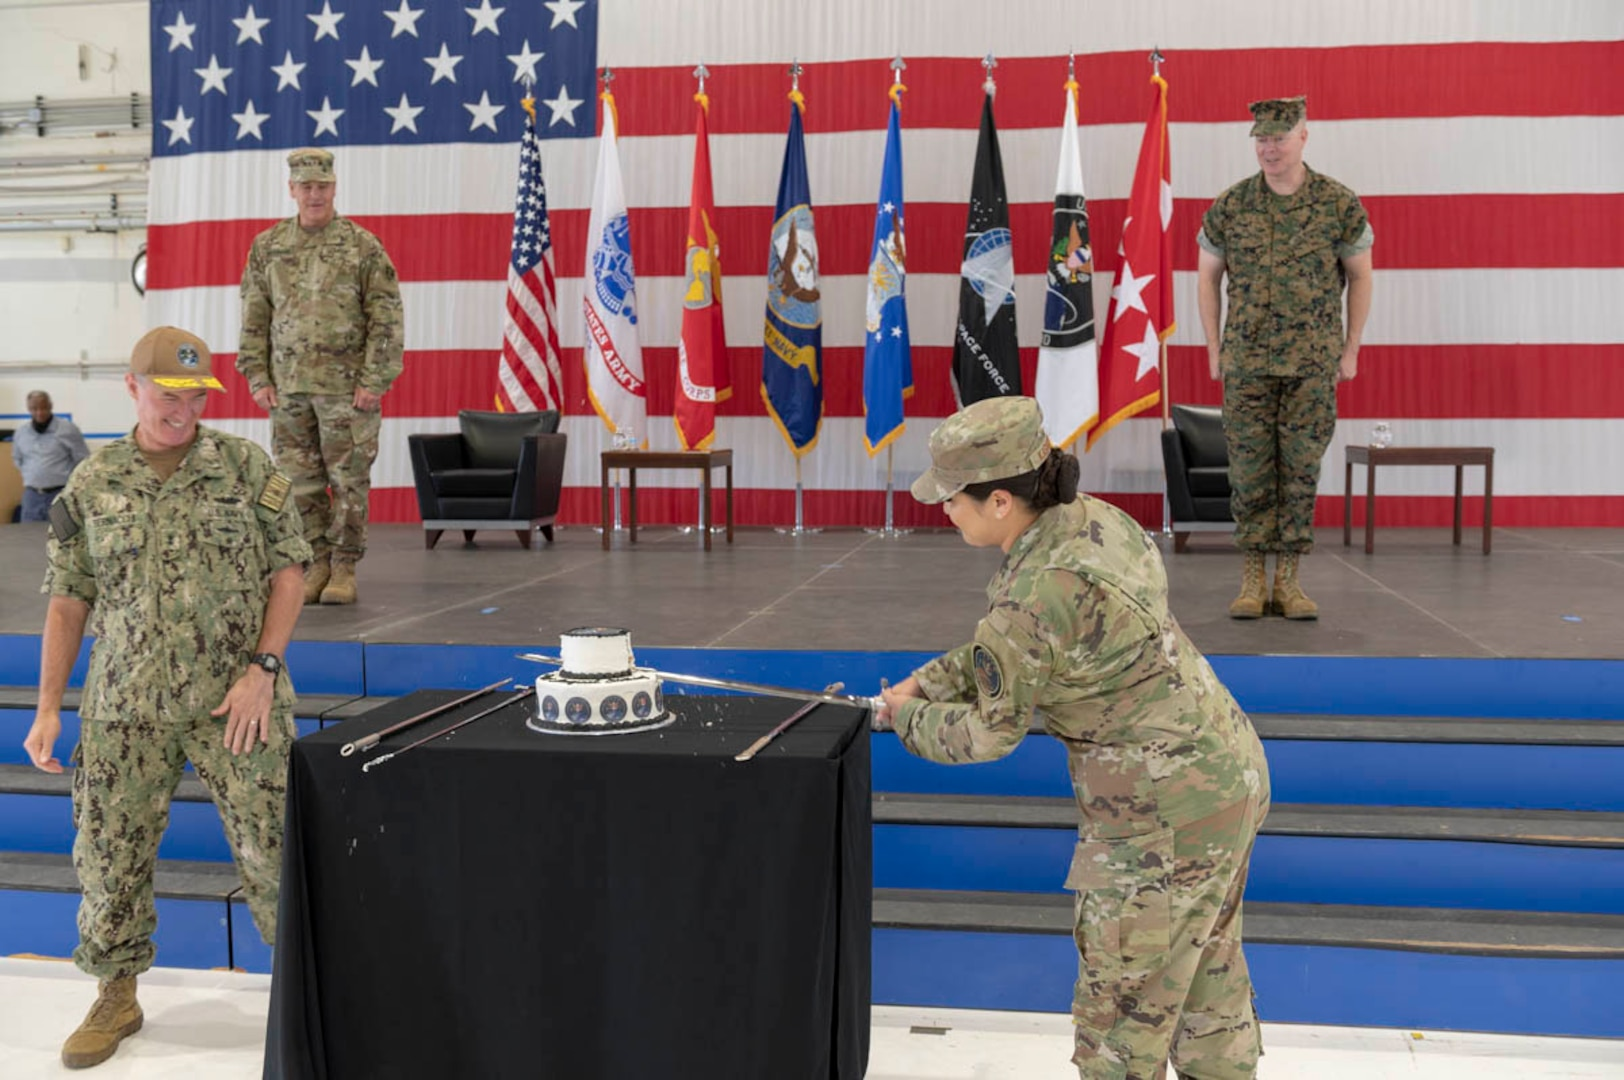 "U.S. Air Force Staff Sgt. Kiara Kashner, right, and U.S. Navy Rear Adm. Michael Bernacchi, representing U.S. Space Command's longest-serving and junior-serving members, respectively, cut a cake in honor of the combatant command's first birthday Aug. 28, 2020, at Peterson Air Force Base, Colorado. Kashner serves as executive assistant to the commandant and Bernacchi is Strategy, Plans and Policy director. USSPACECOM was officially established Aug. 29, 2019, during a ceremony in the White House Rose Garden with President Donald Trump; Dr. Mark T. Esper. Secretary of Defense; and Gen. John W. ""Jay"" Raymond, former USSPACECOM commander and current U.S. Space Force Chief of Space Operations; and Chief Master Sgt. Roger Towberman, former USSPACECOM command senior enlisted leader and current USSF CSEL."